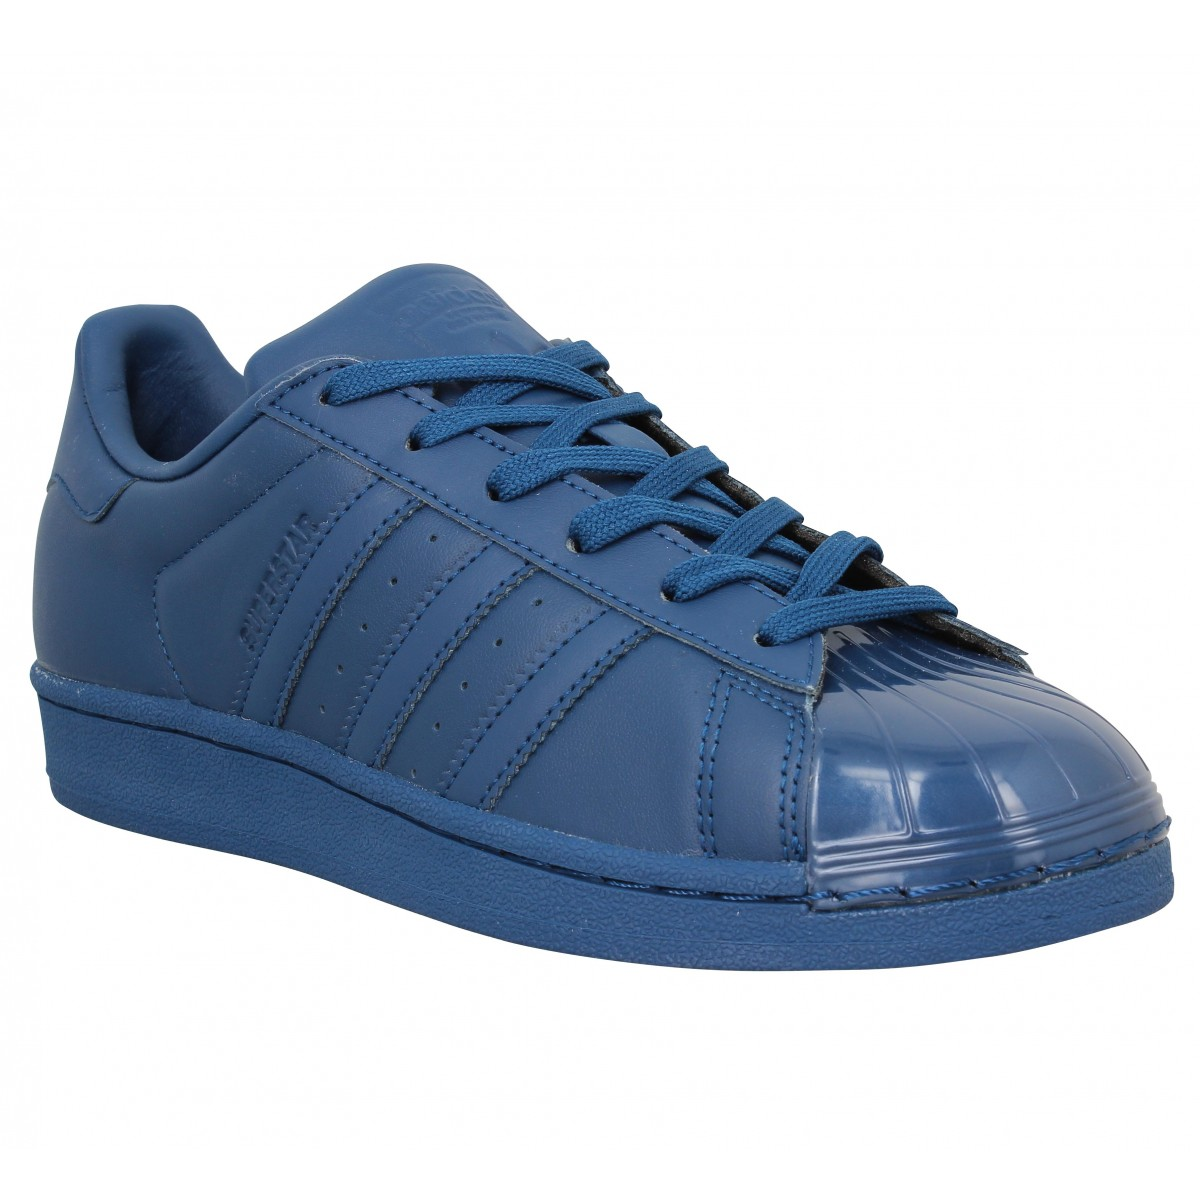 Baskets ADIDAS Superstar Glossy Navy